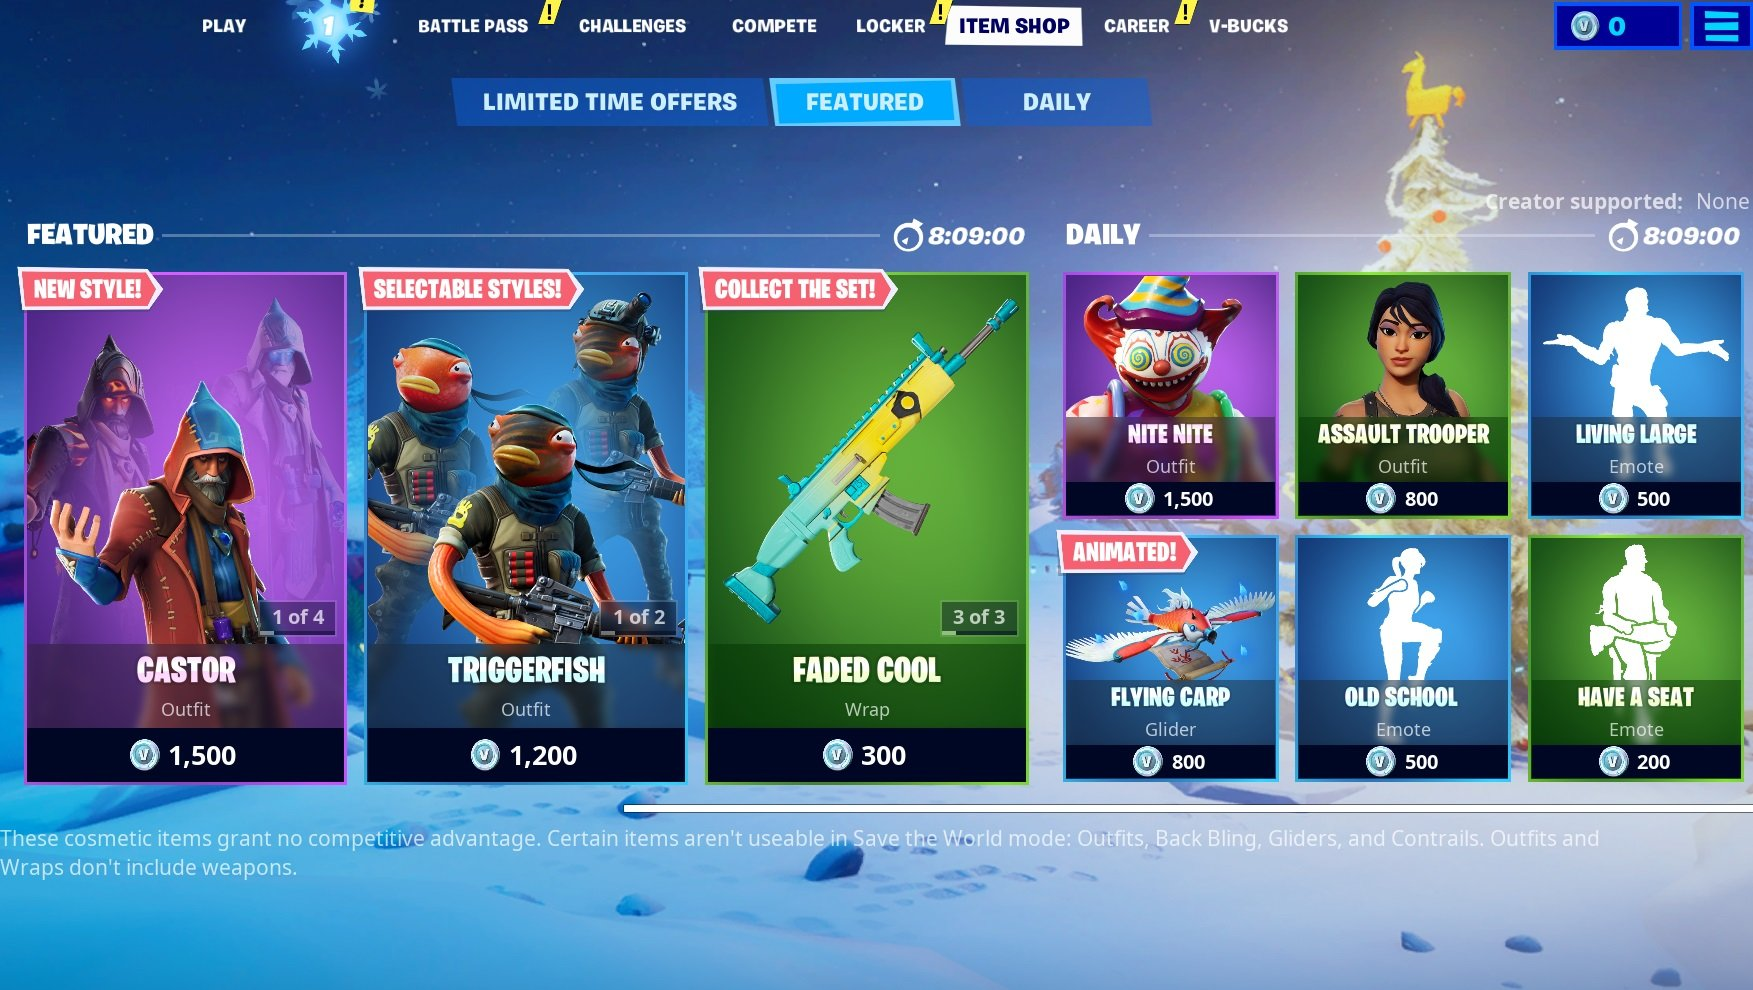 You have less than 8 hours to grab items like the Triggerfish Outfit and Flying Carp Glider in Fortnite.